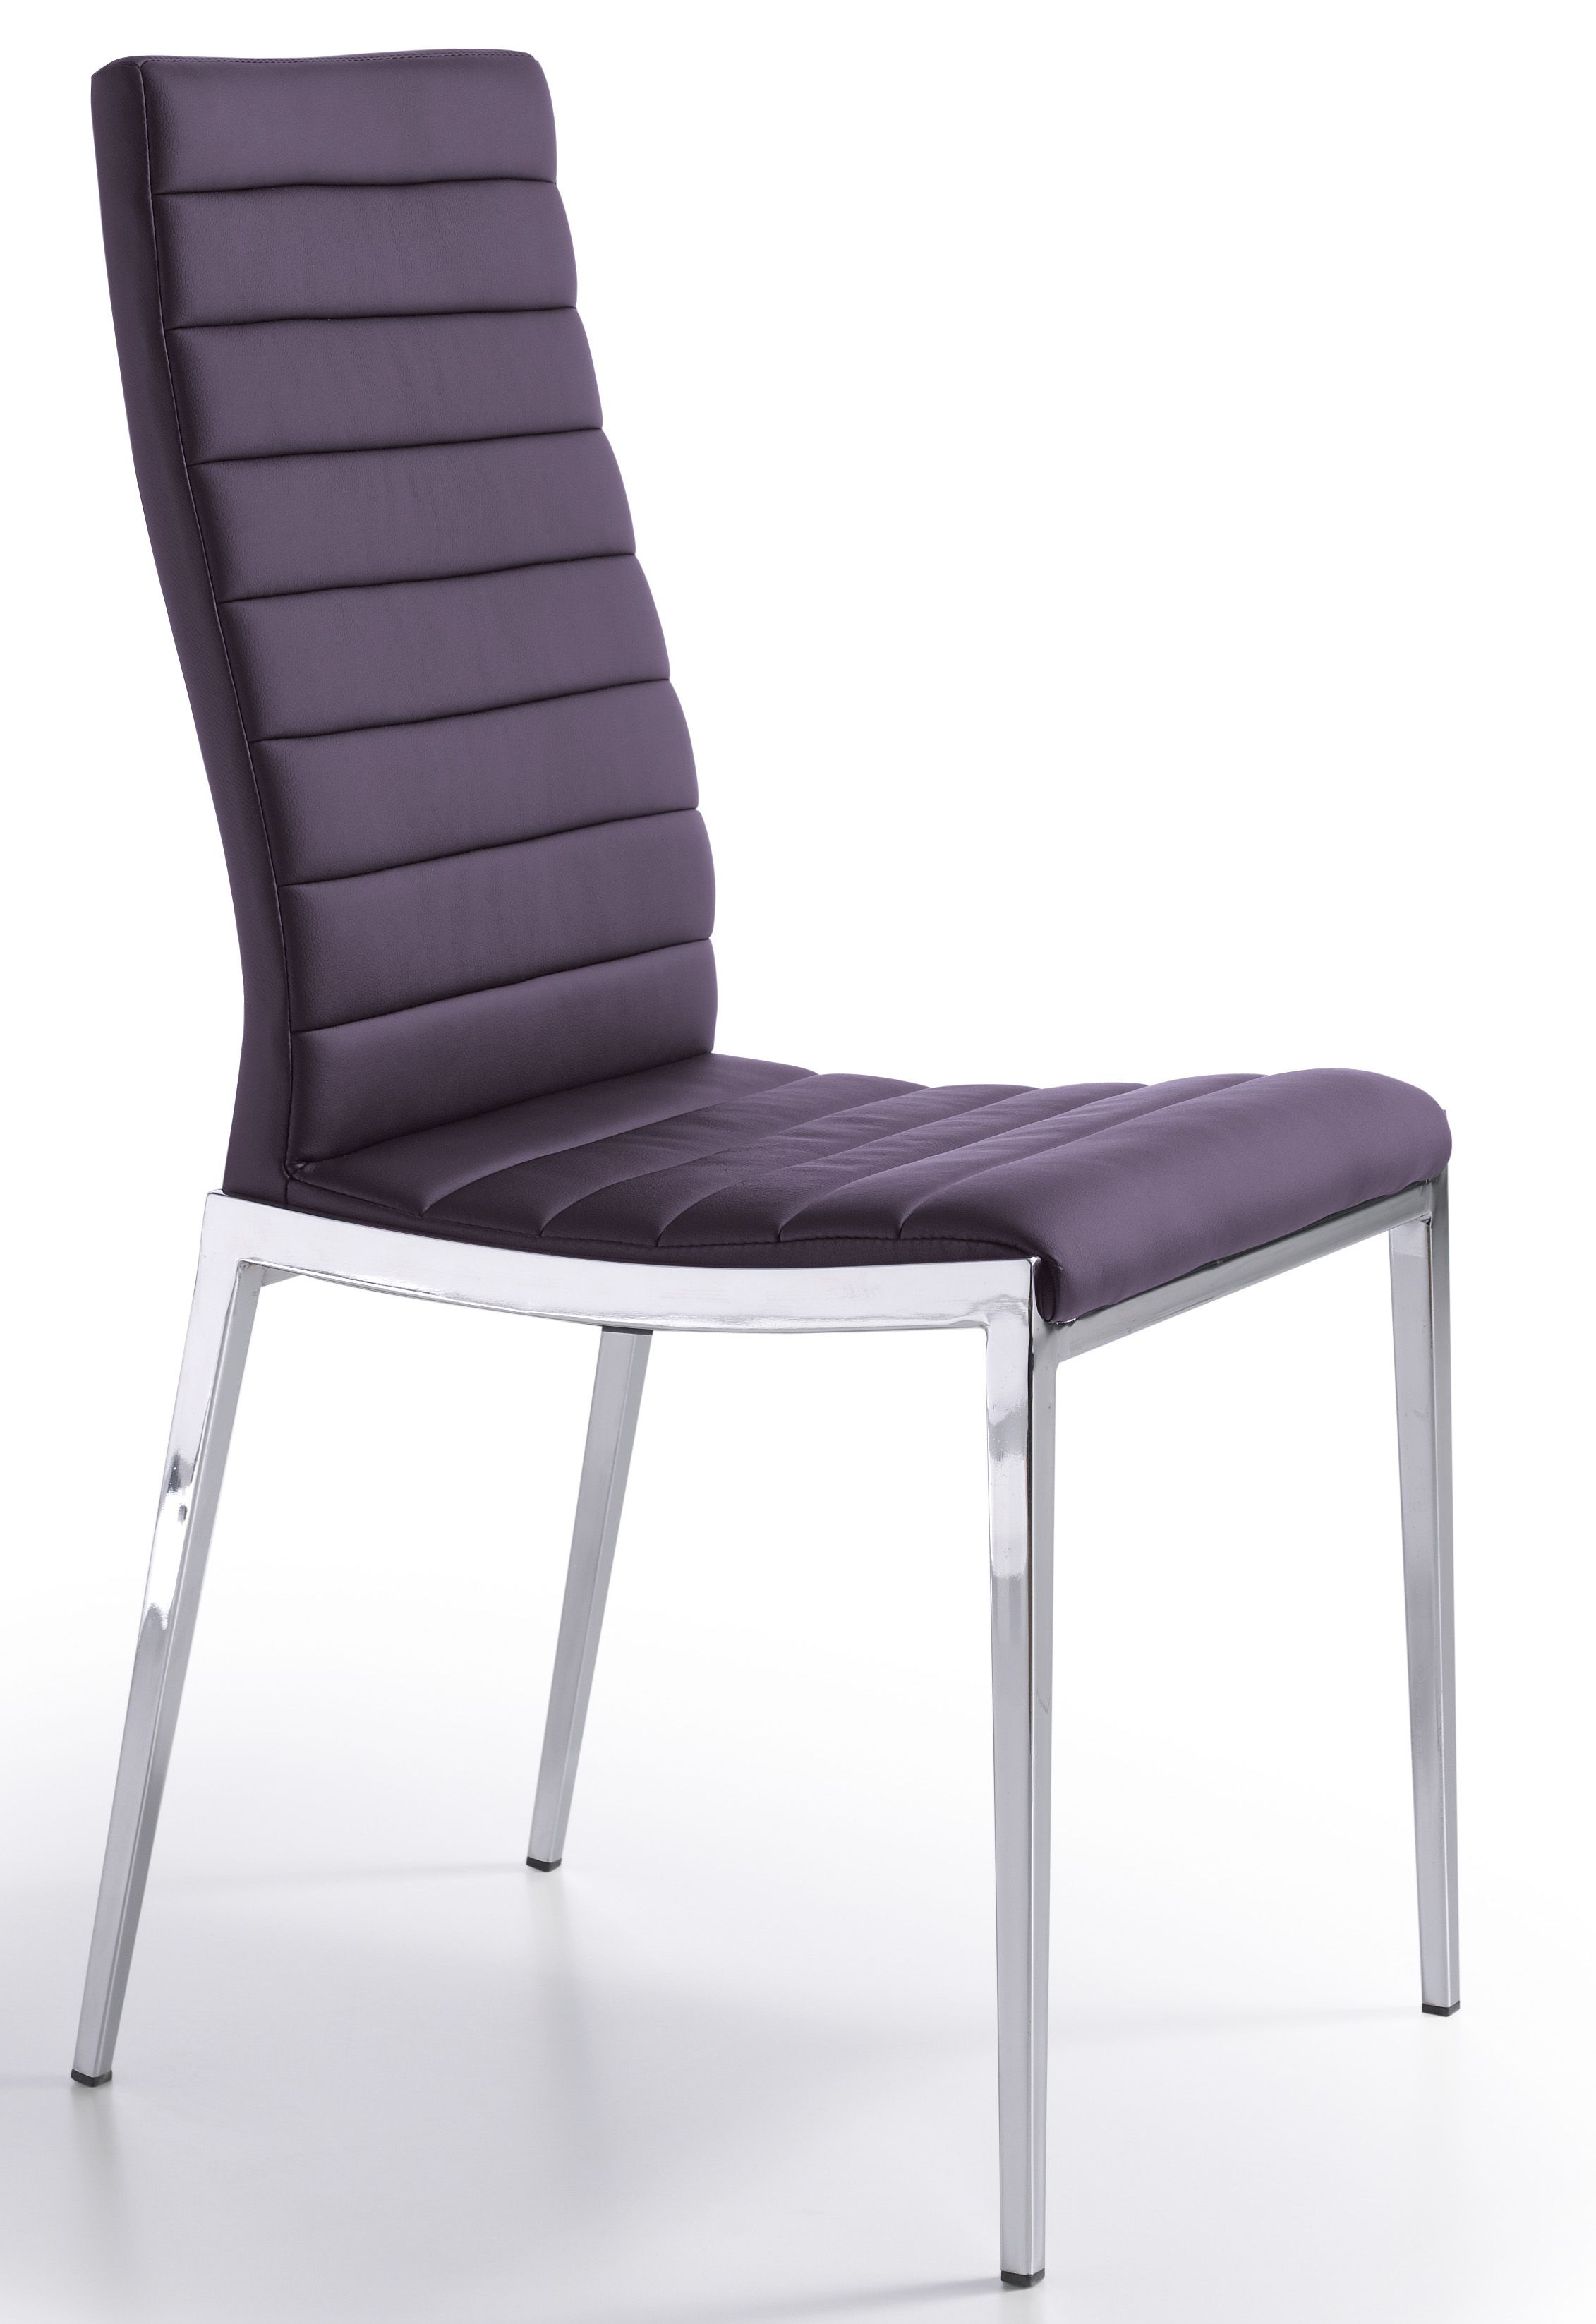 Chaise Couleur Design Chaise Design Matelassée Violet Dona Lot De 2 Chaise